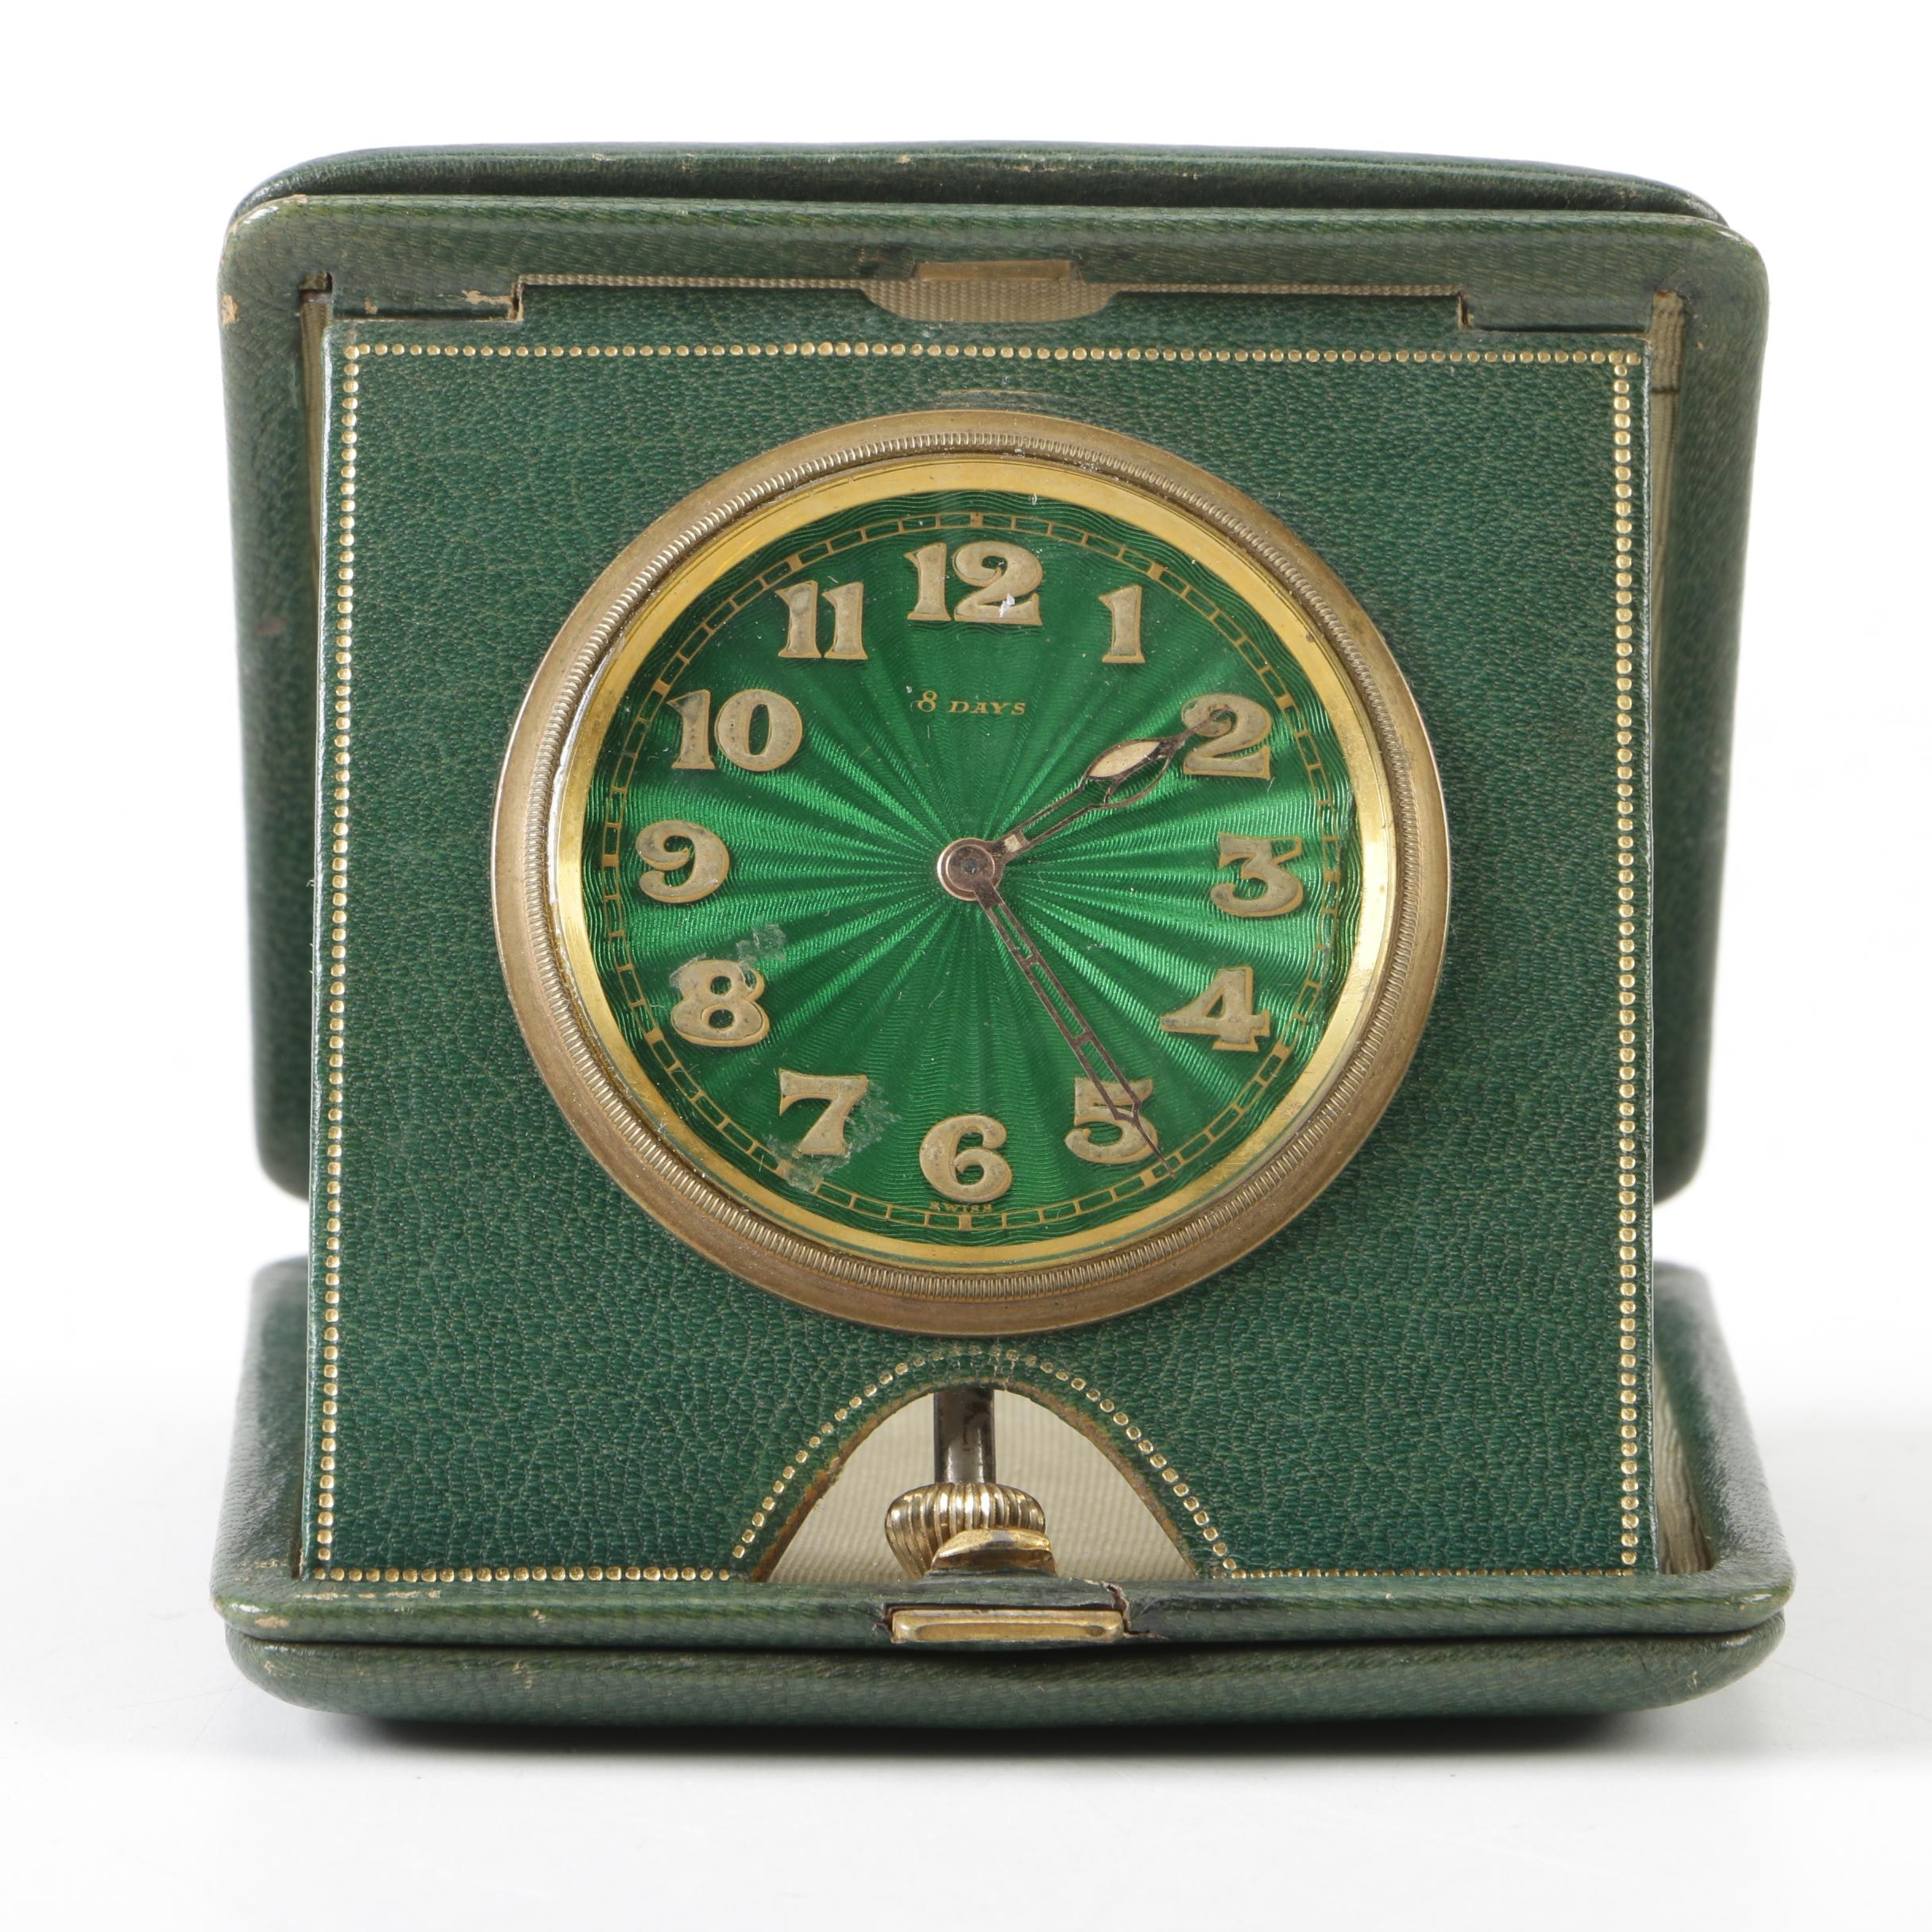 Swiss Made 8 Day Travel Alarm Clock in Leather Case